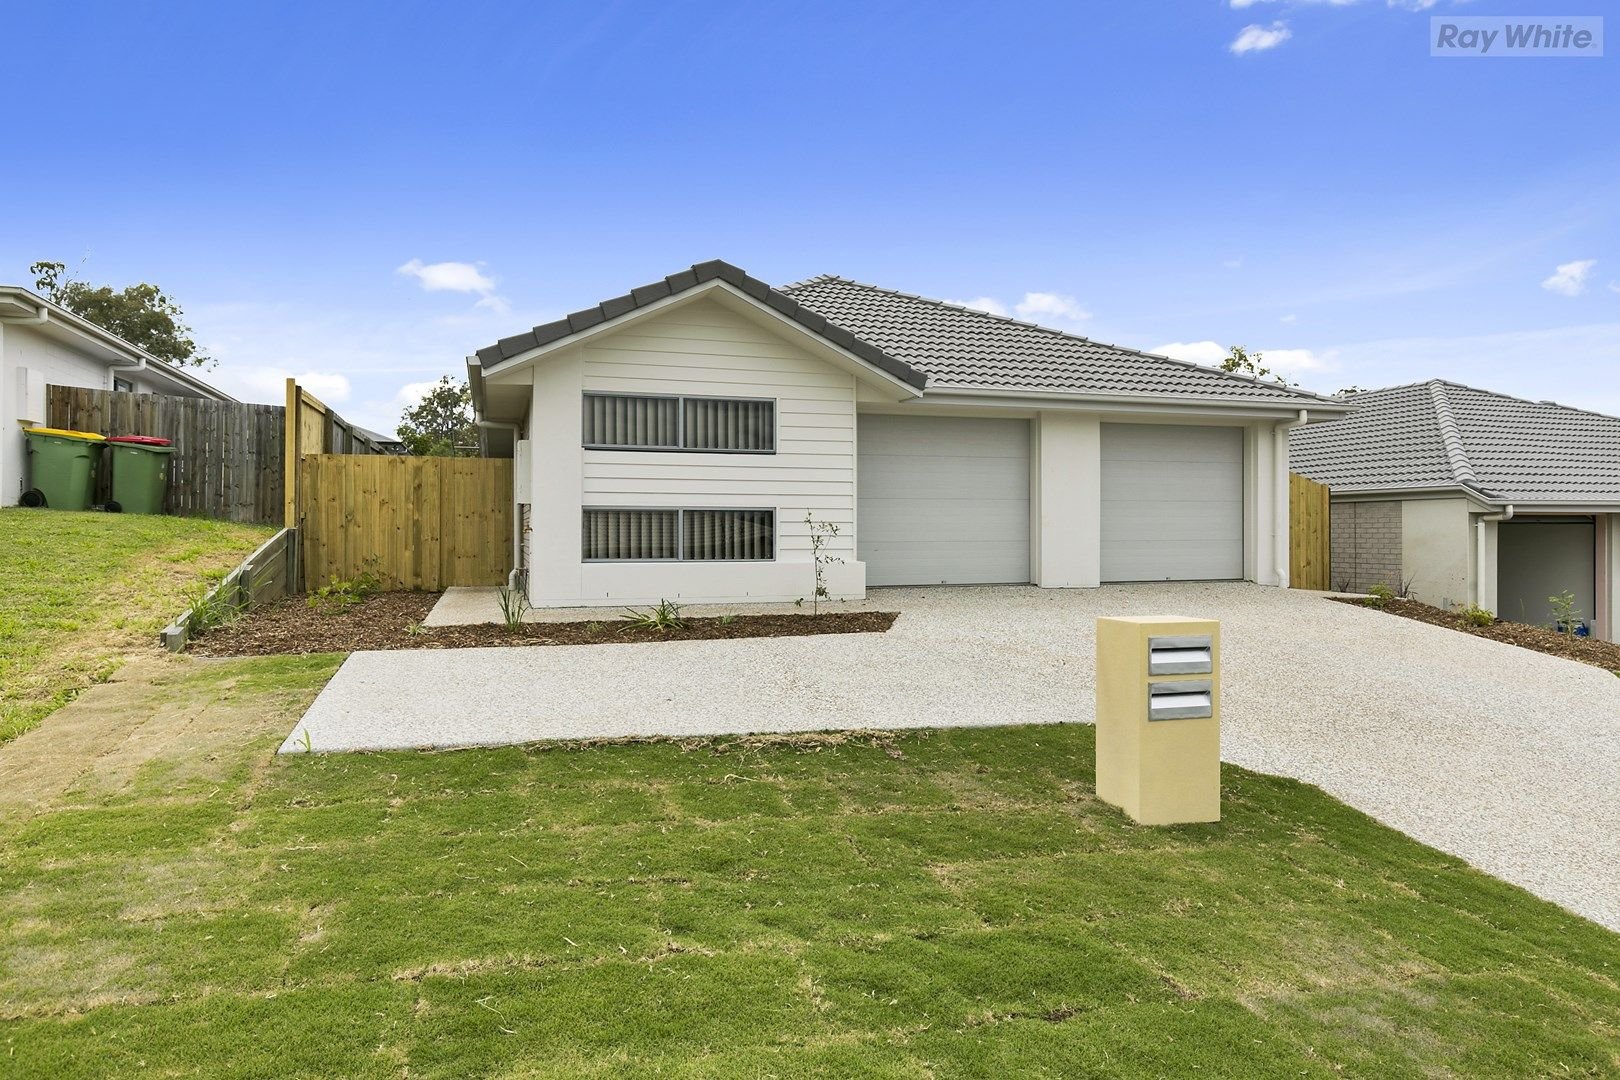 1/6 Prosperity Way, Brassall QLD 4305, Image 0